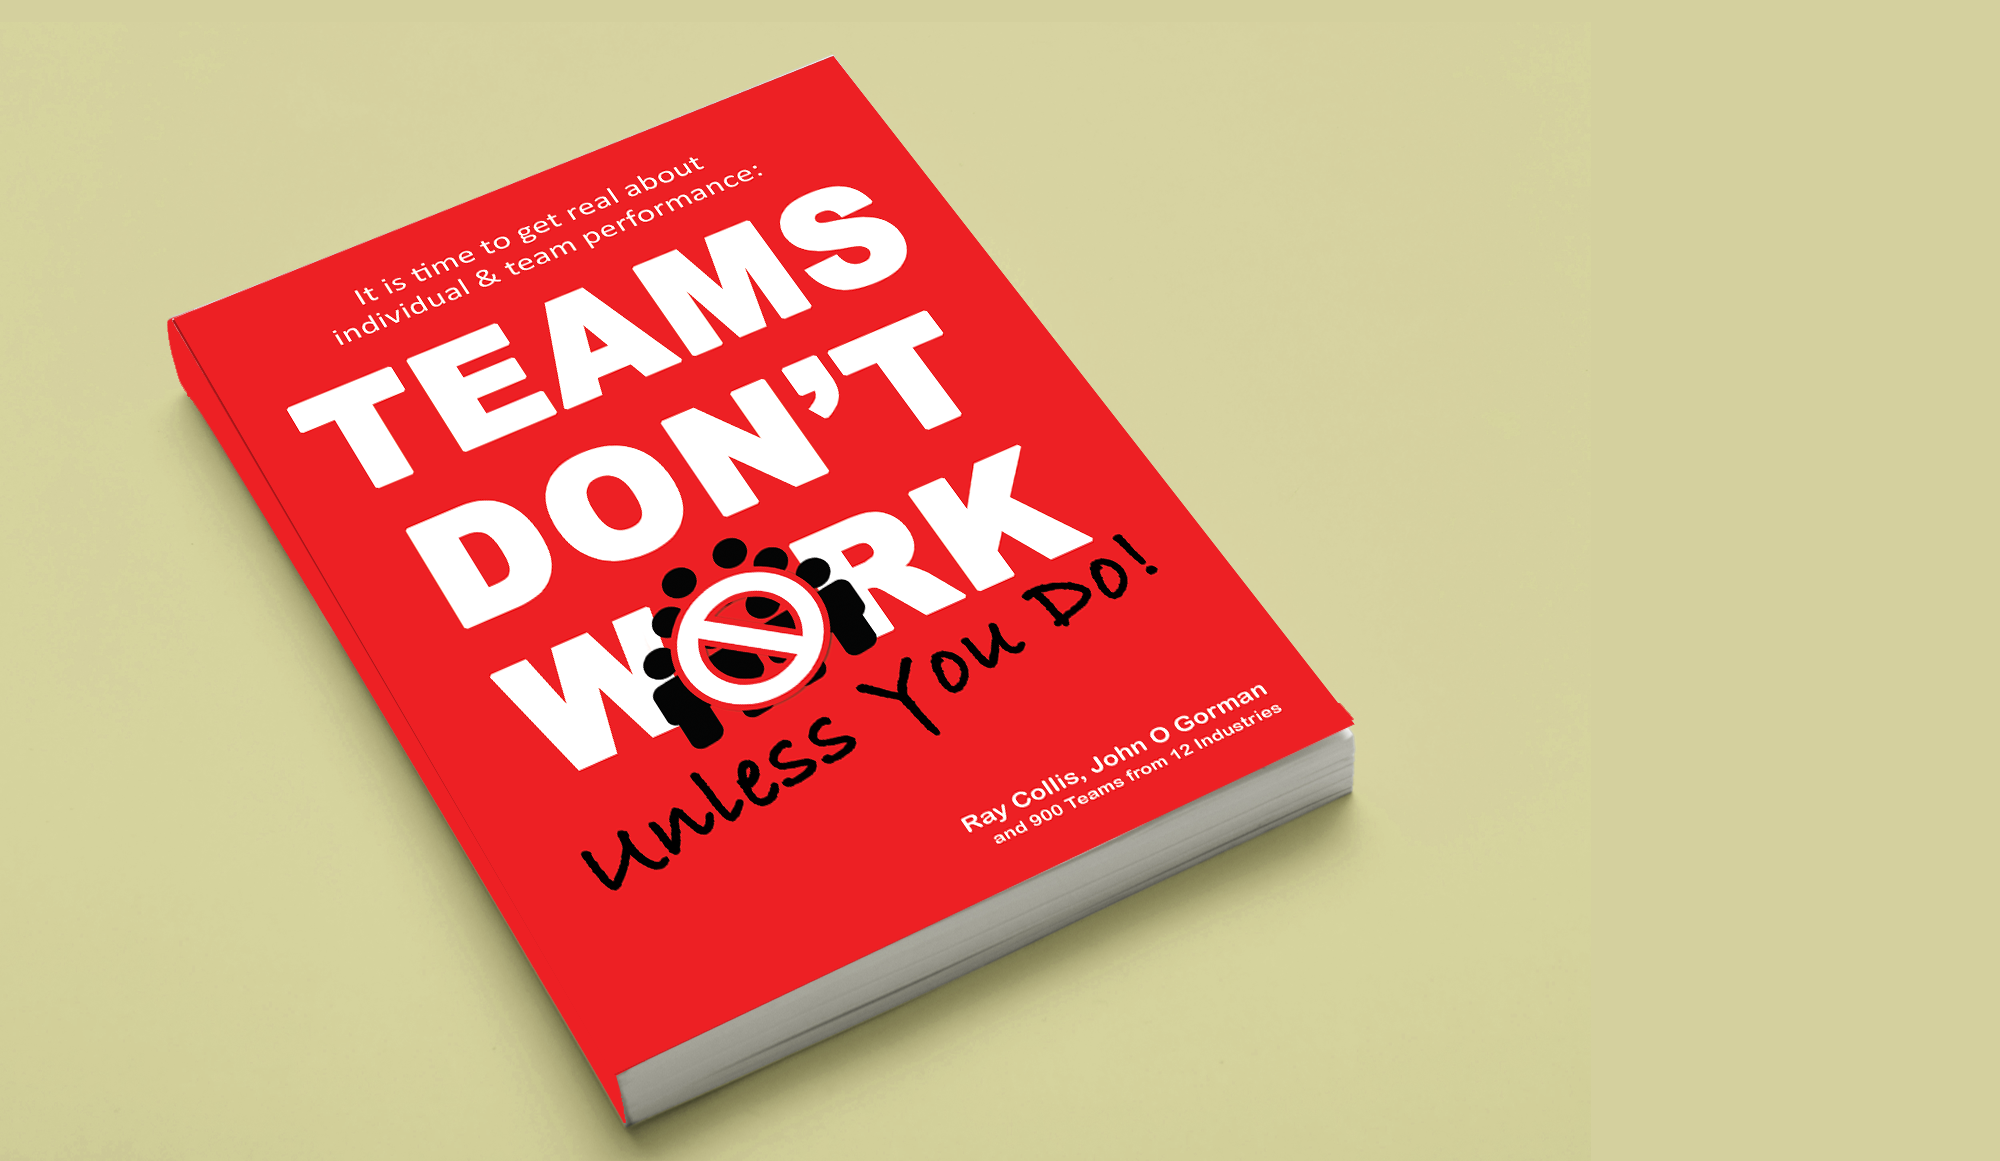 Teams Dont Work